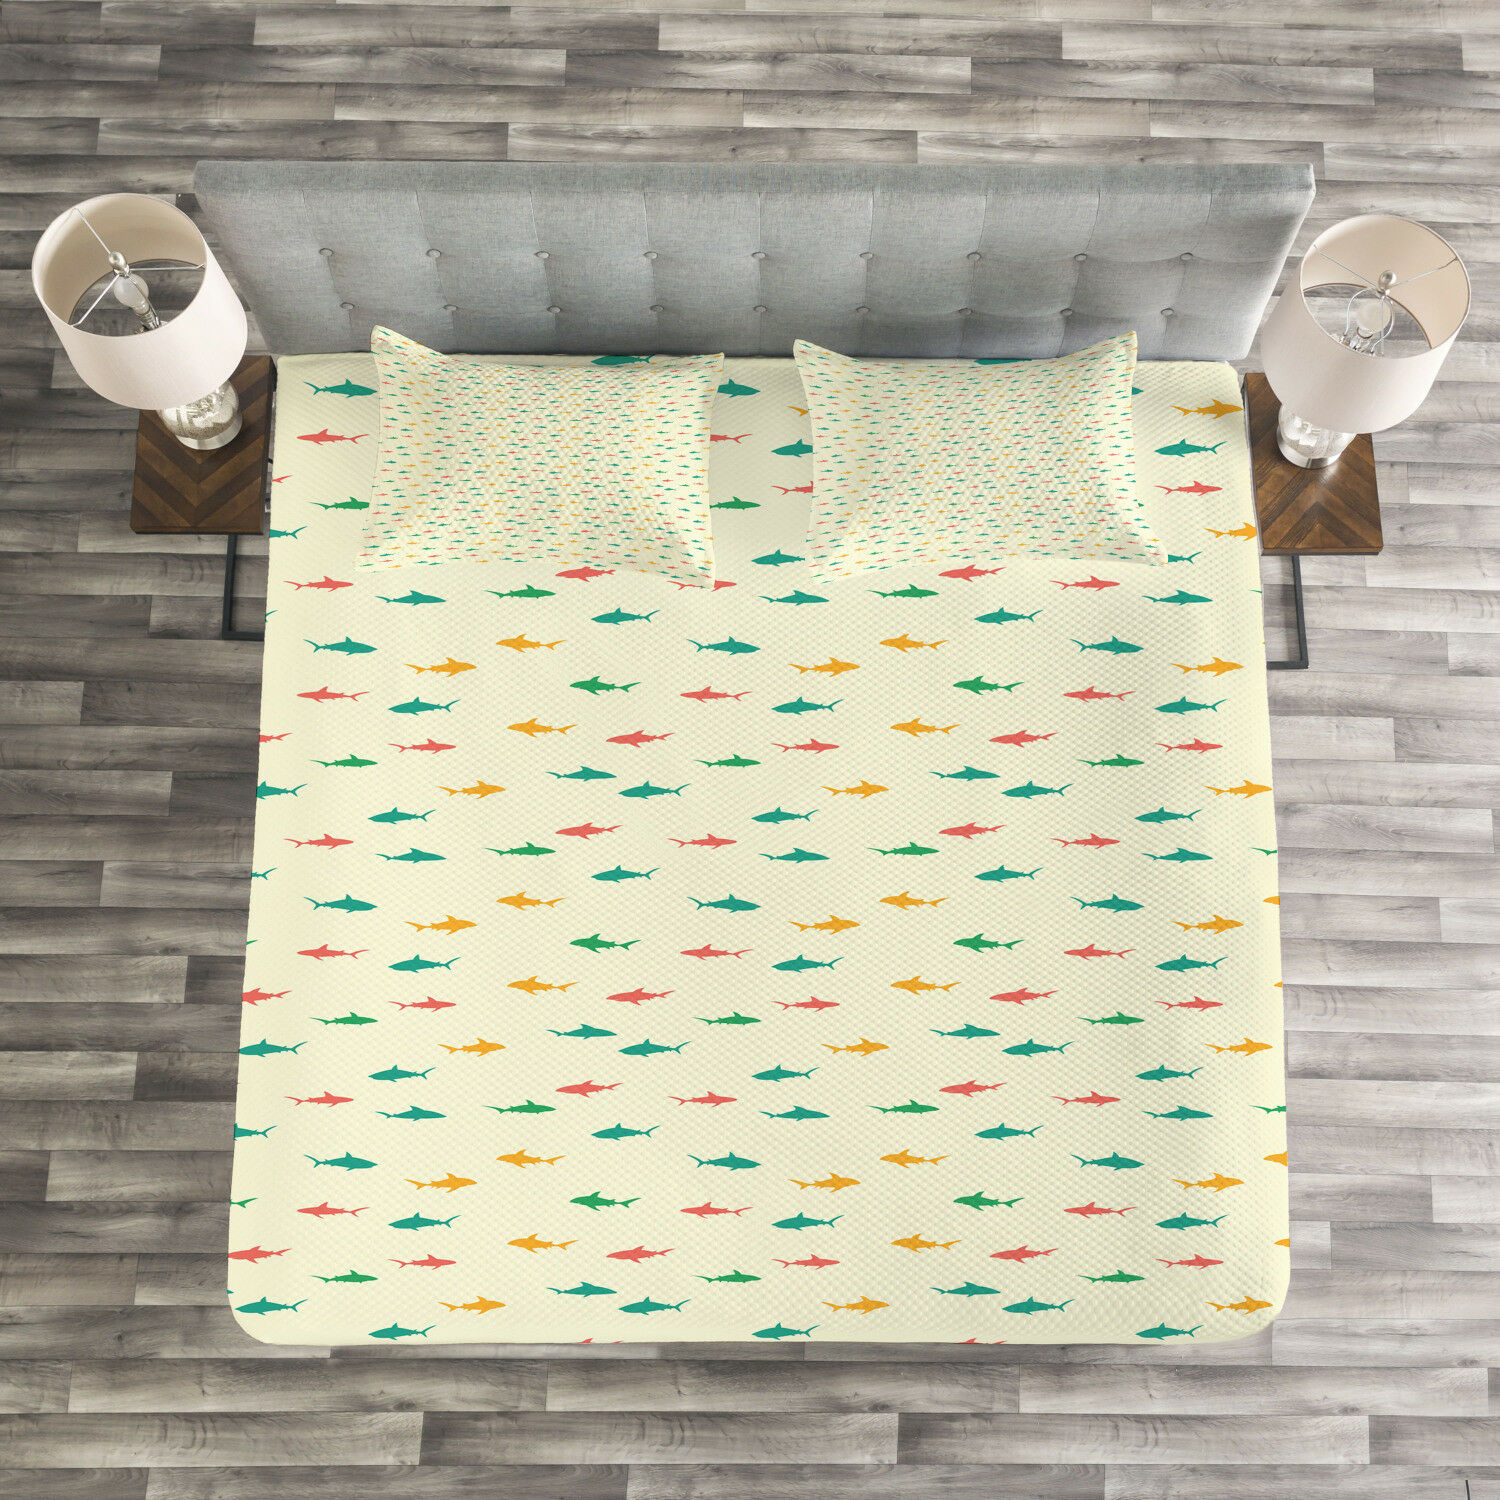 Shark Quilted Bedspread & Pillow Shams Set, Kids colorful Wildlife Print